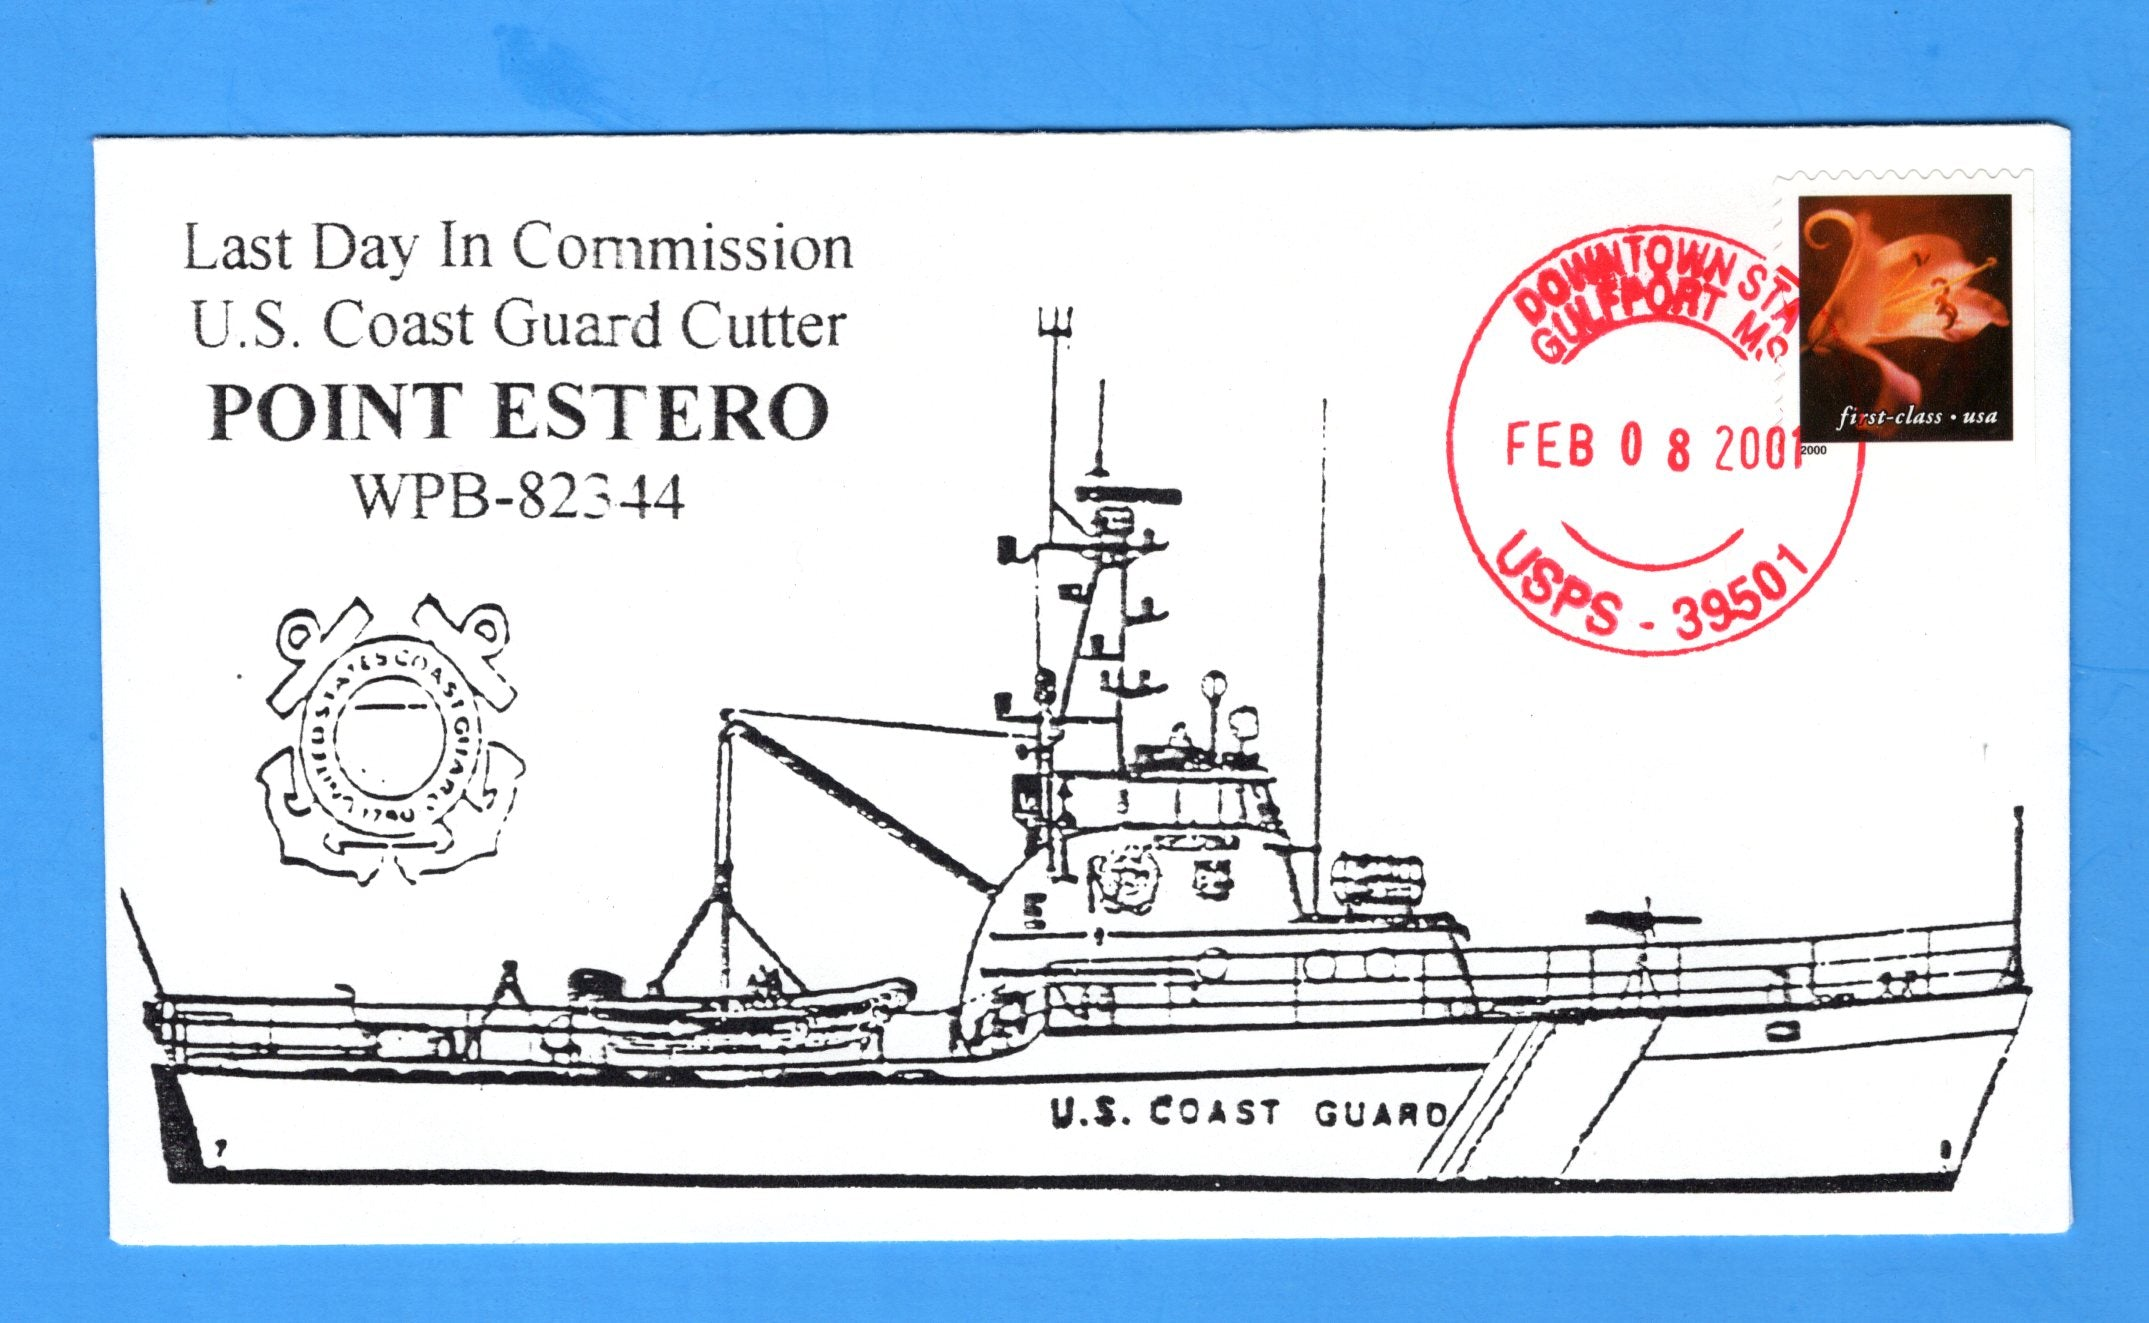 USCGC Point Estero WPB-82344 Last Day in Commission February 8, 2001 - Cachet by Bill Everett